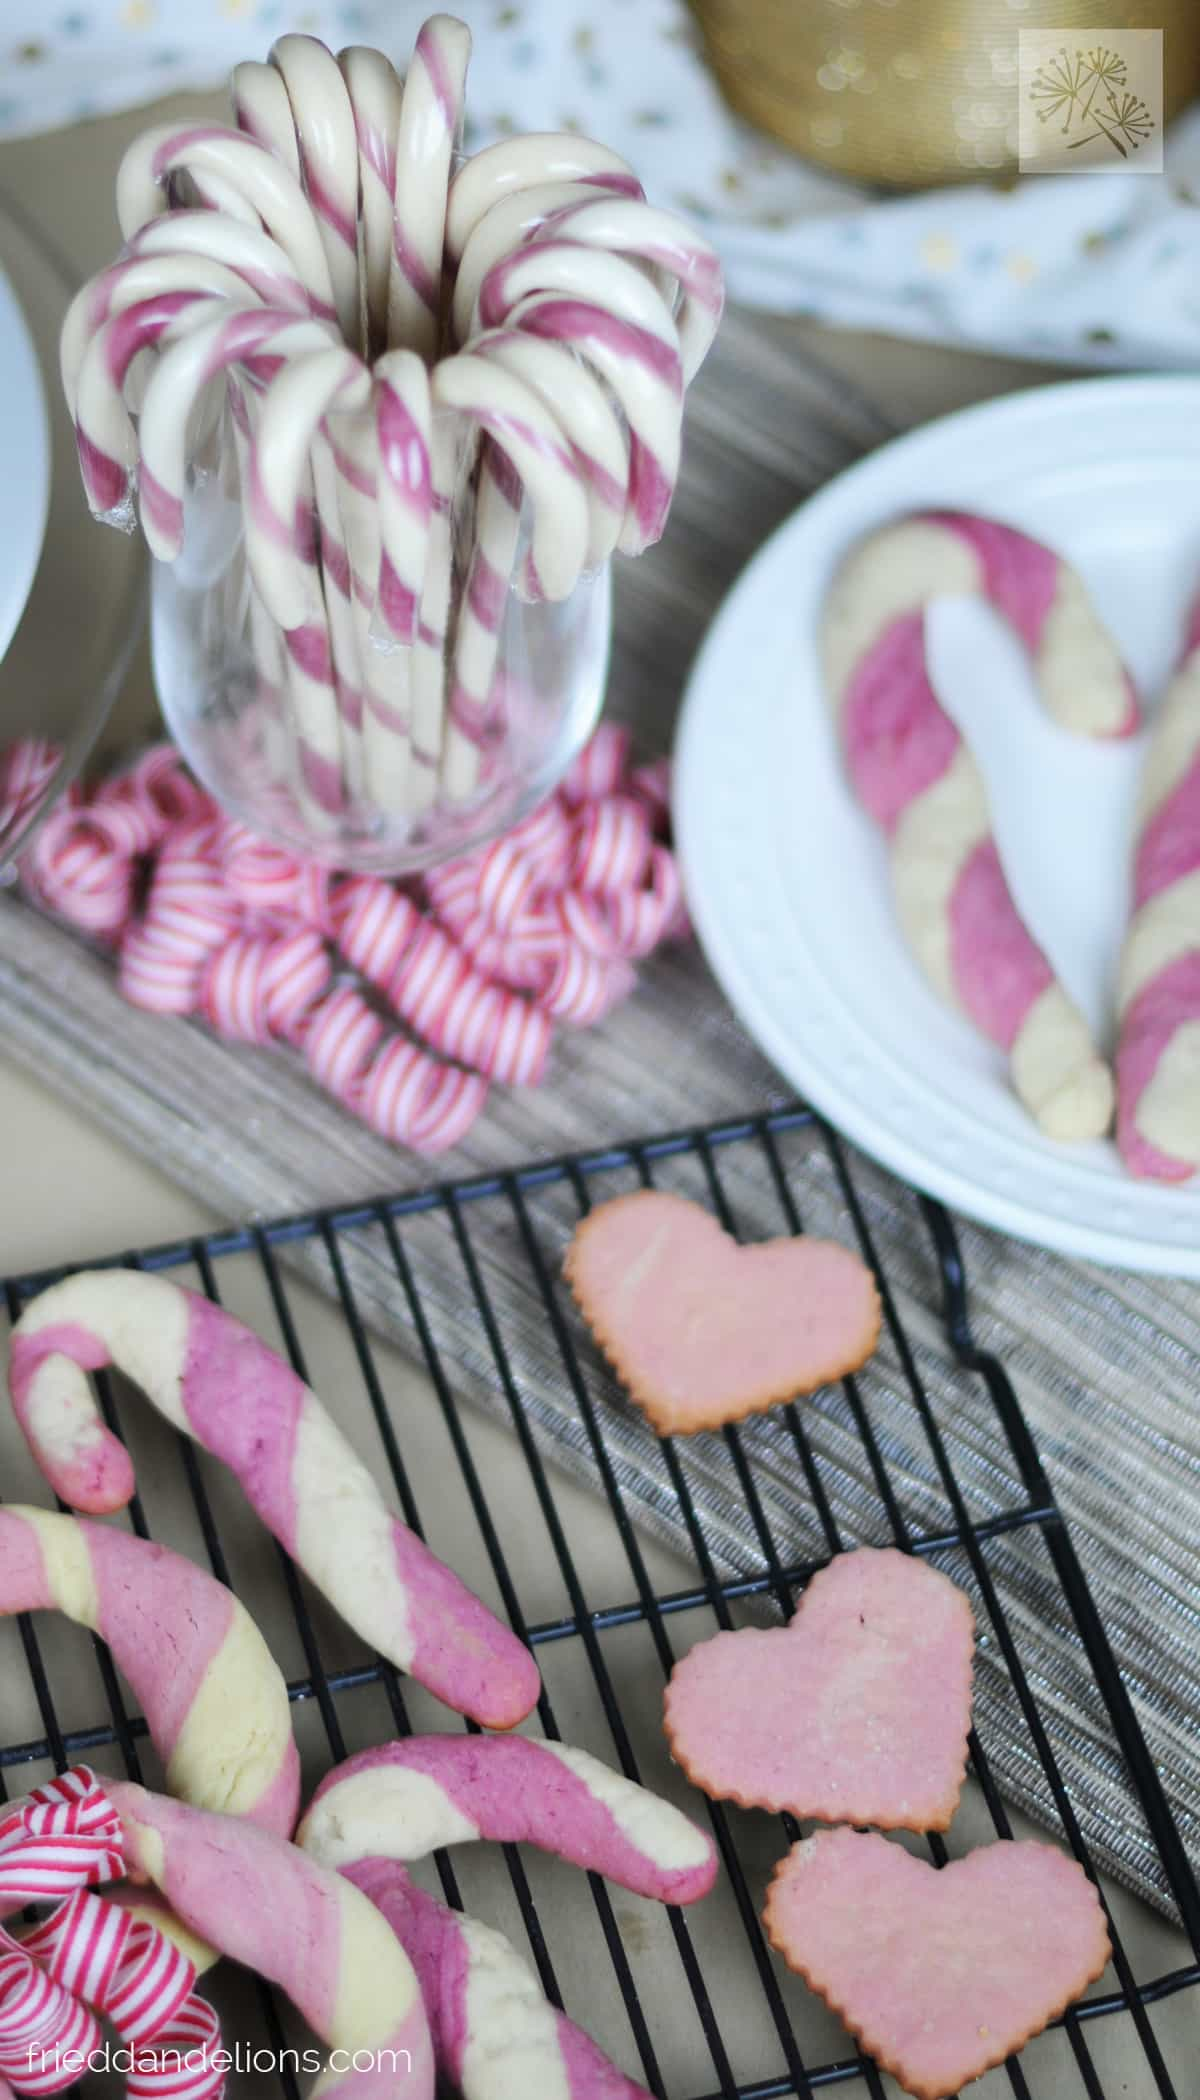 Candy Cane Cookies Fried Dandelions Plant Based Recipes